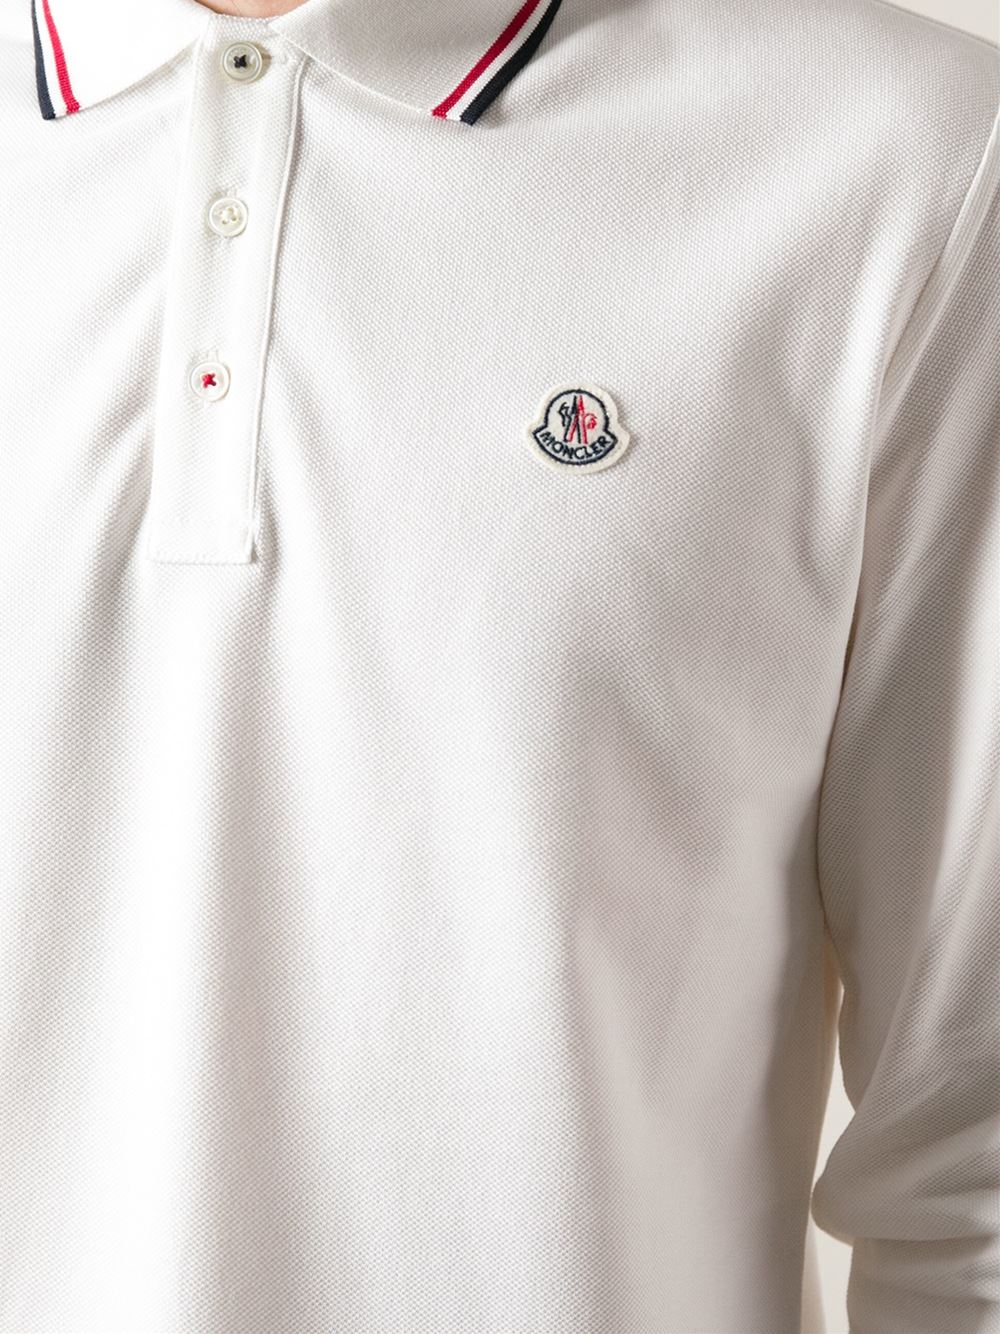 7a022bb3541104 Moncler Long Sleeve Polo Shirt in White for Men - Lyst